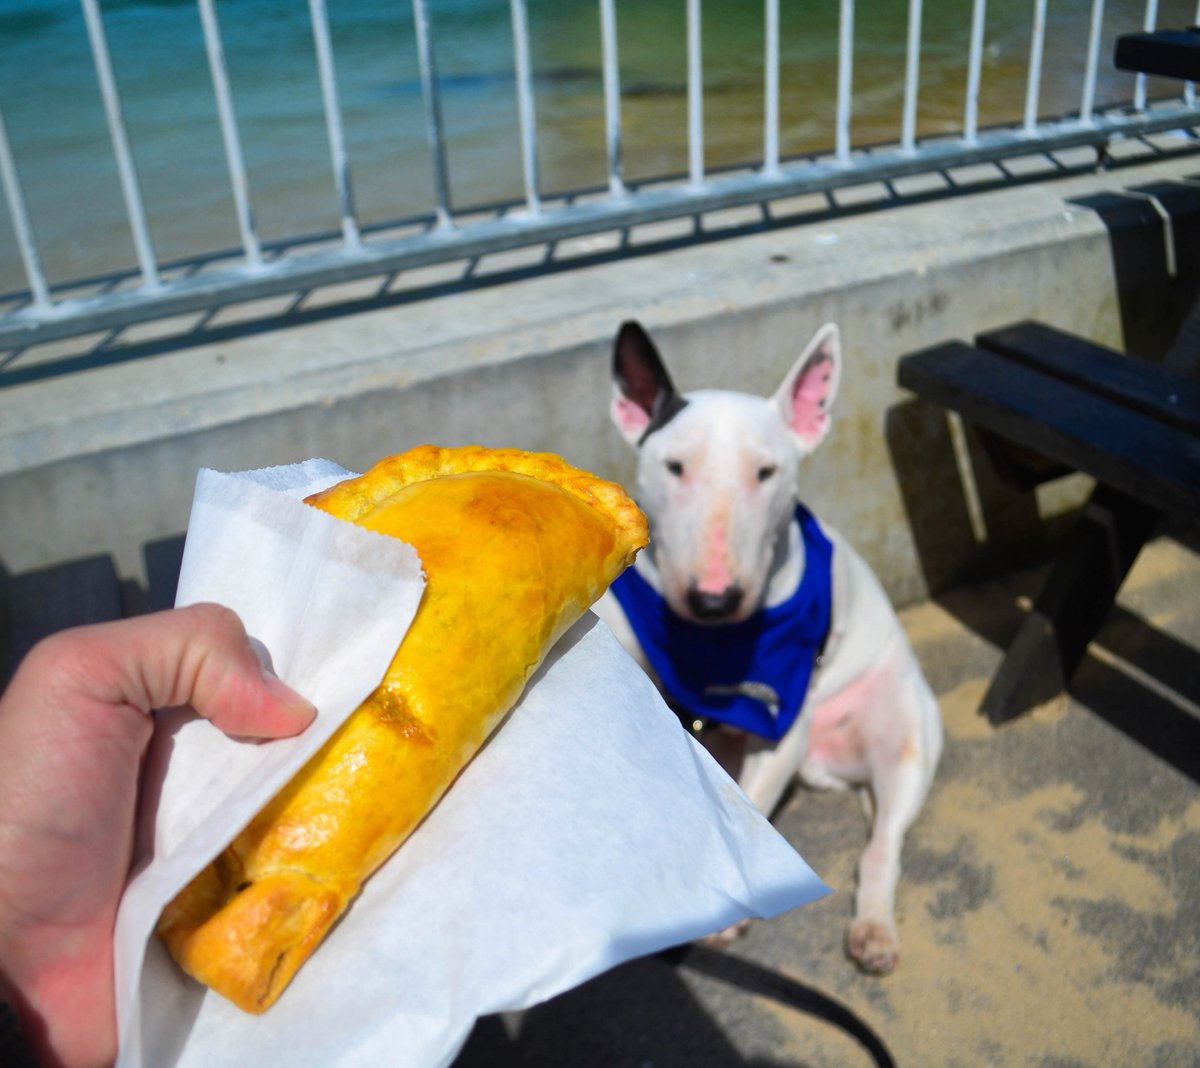 Our first time eating authentic Cornish pasties! They were delicious!  . . . #newquay #cornwall #dogsoftwitter #dogsofinstagram #bullterrier #bullies #bullterriers #puppers #puppy #dogs #dog #dogtravel #traveldog #dogfriendly #dogmodel #bullterrierlovers<br>http://pic.twitter.com/9JxHuAkuiH